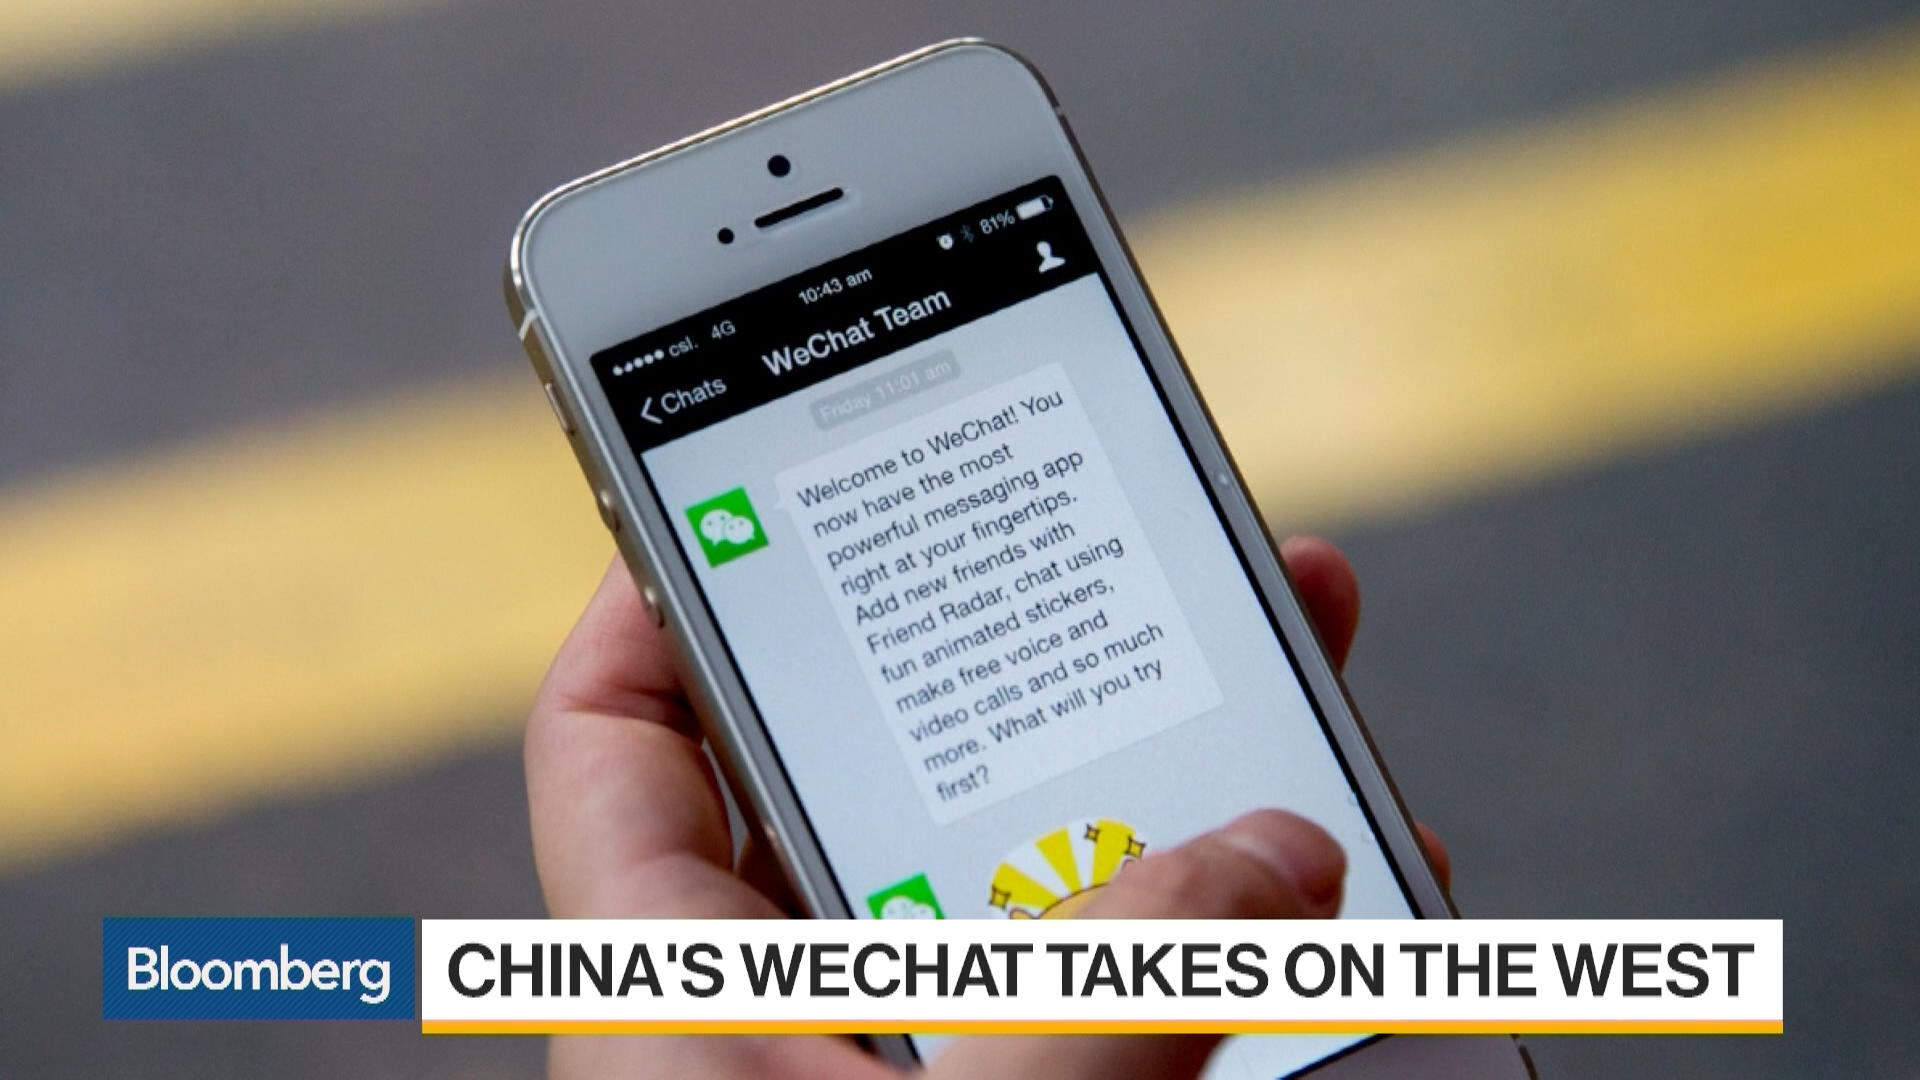 China's WeChat Takes on the West